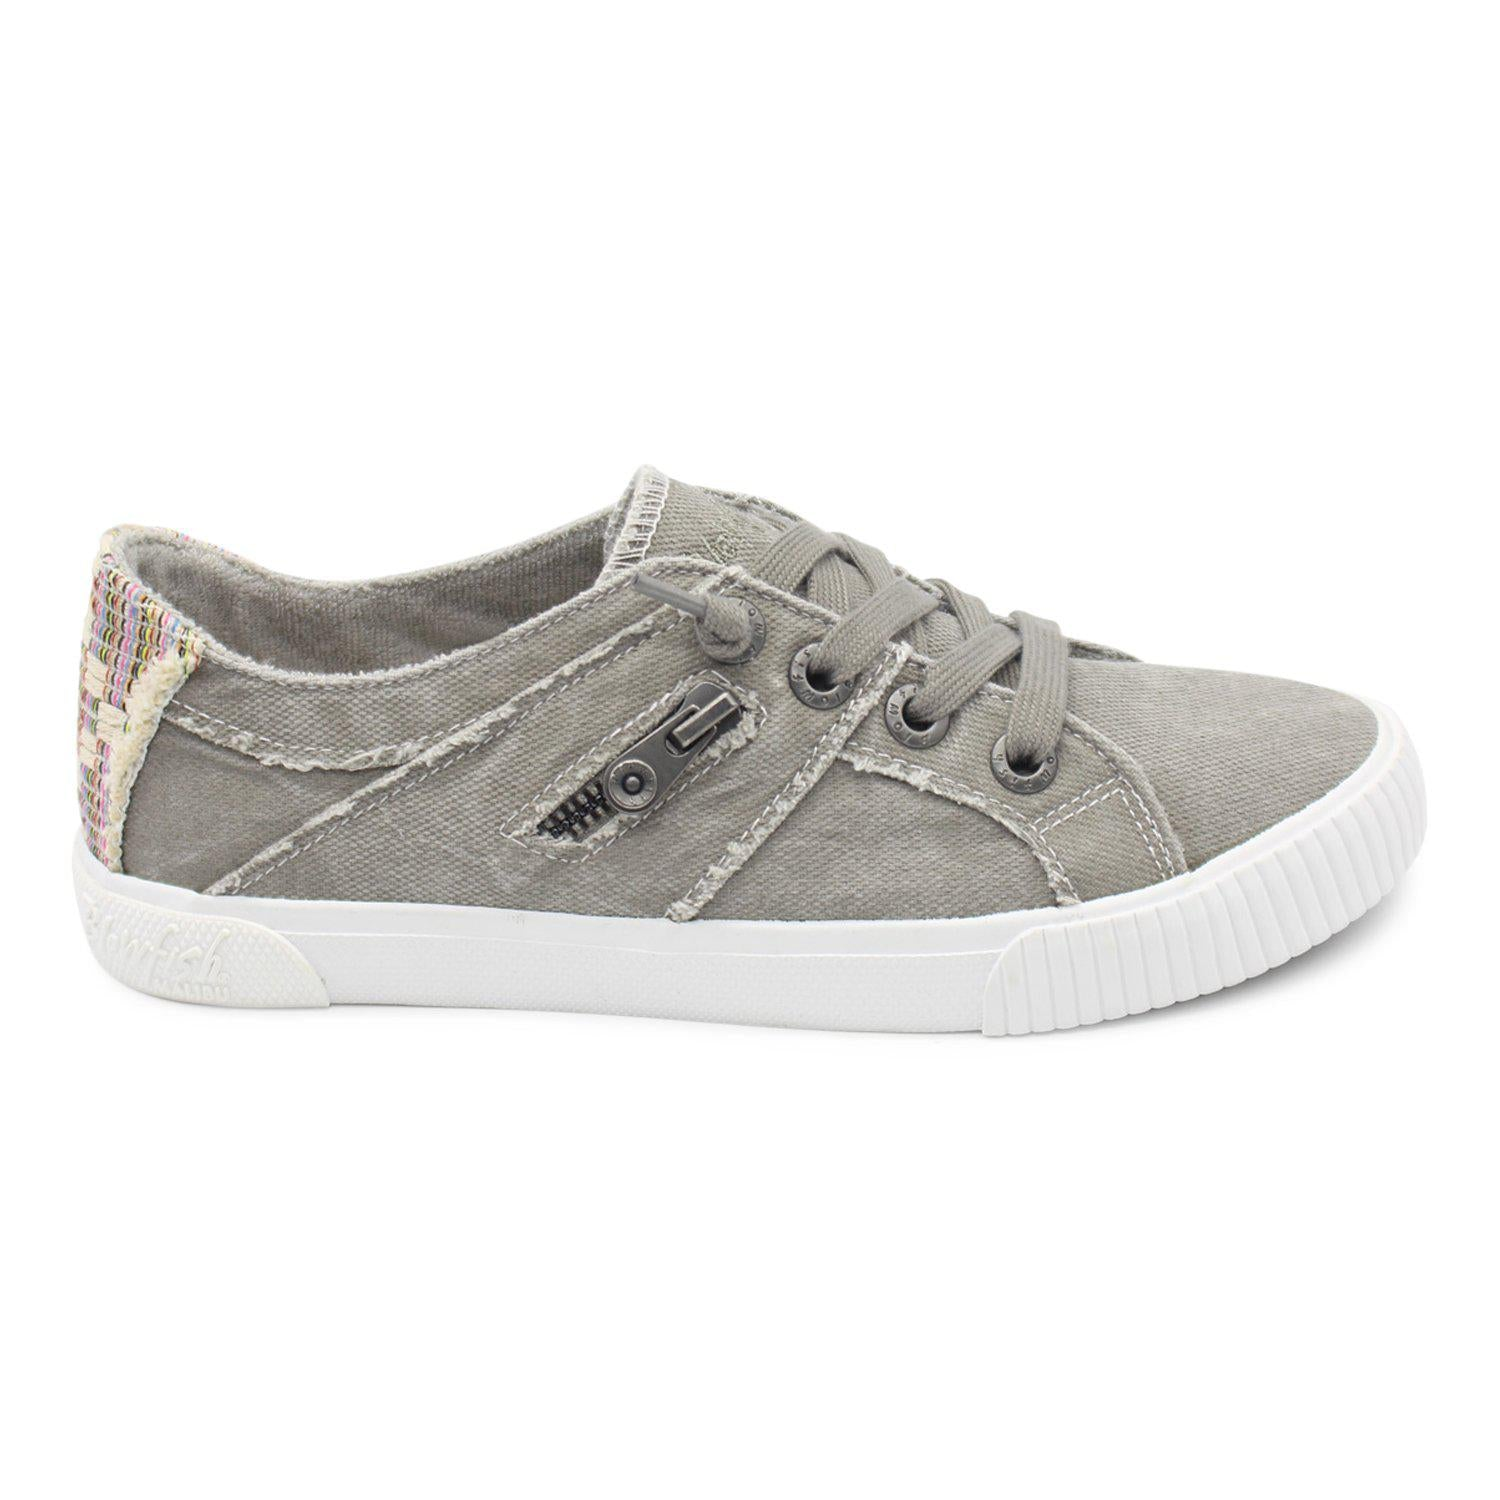 Blowfish Fruit Canvas Sneaker - Wolf Gray